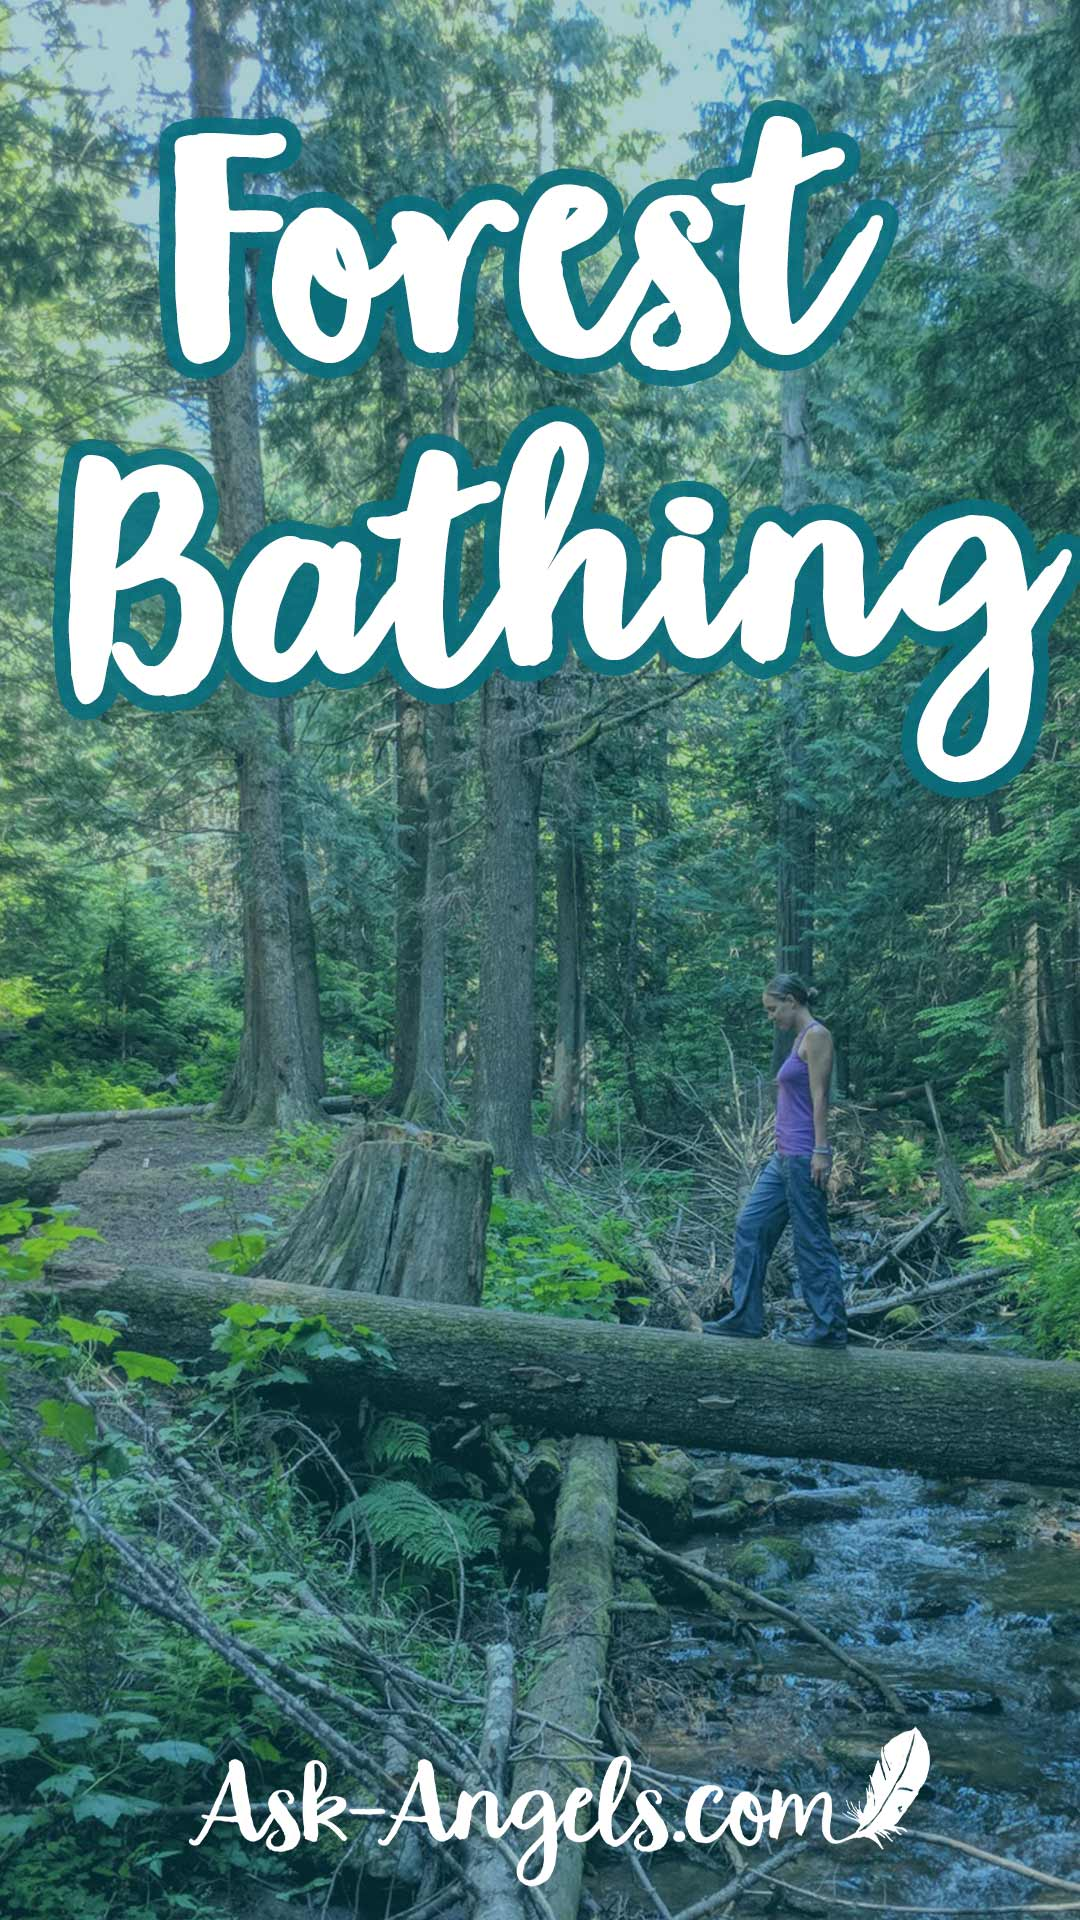 Forest Bathing – A Powerful Energetic Reset!